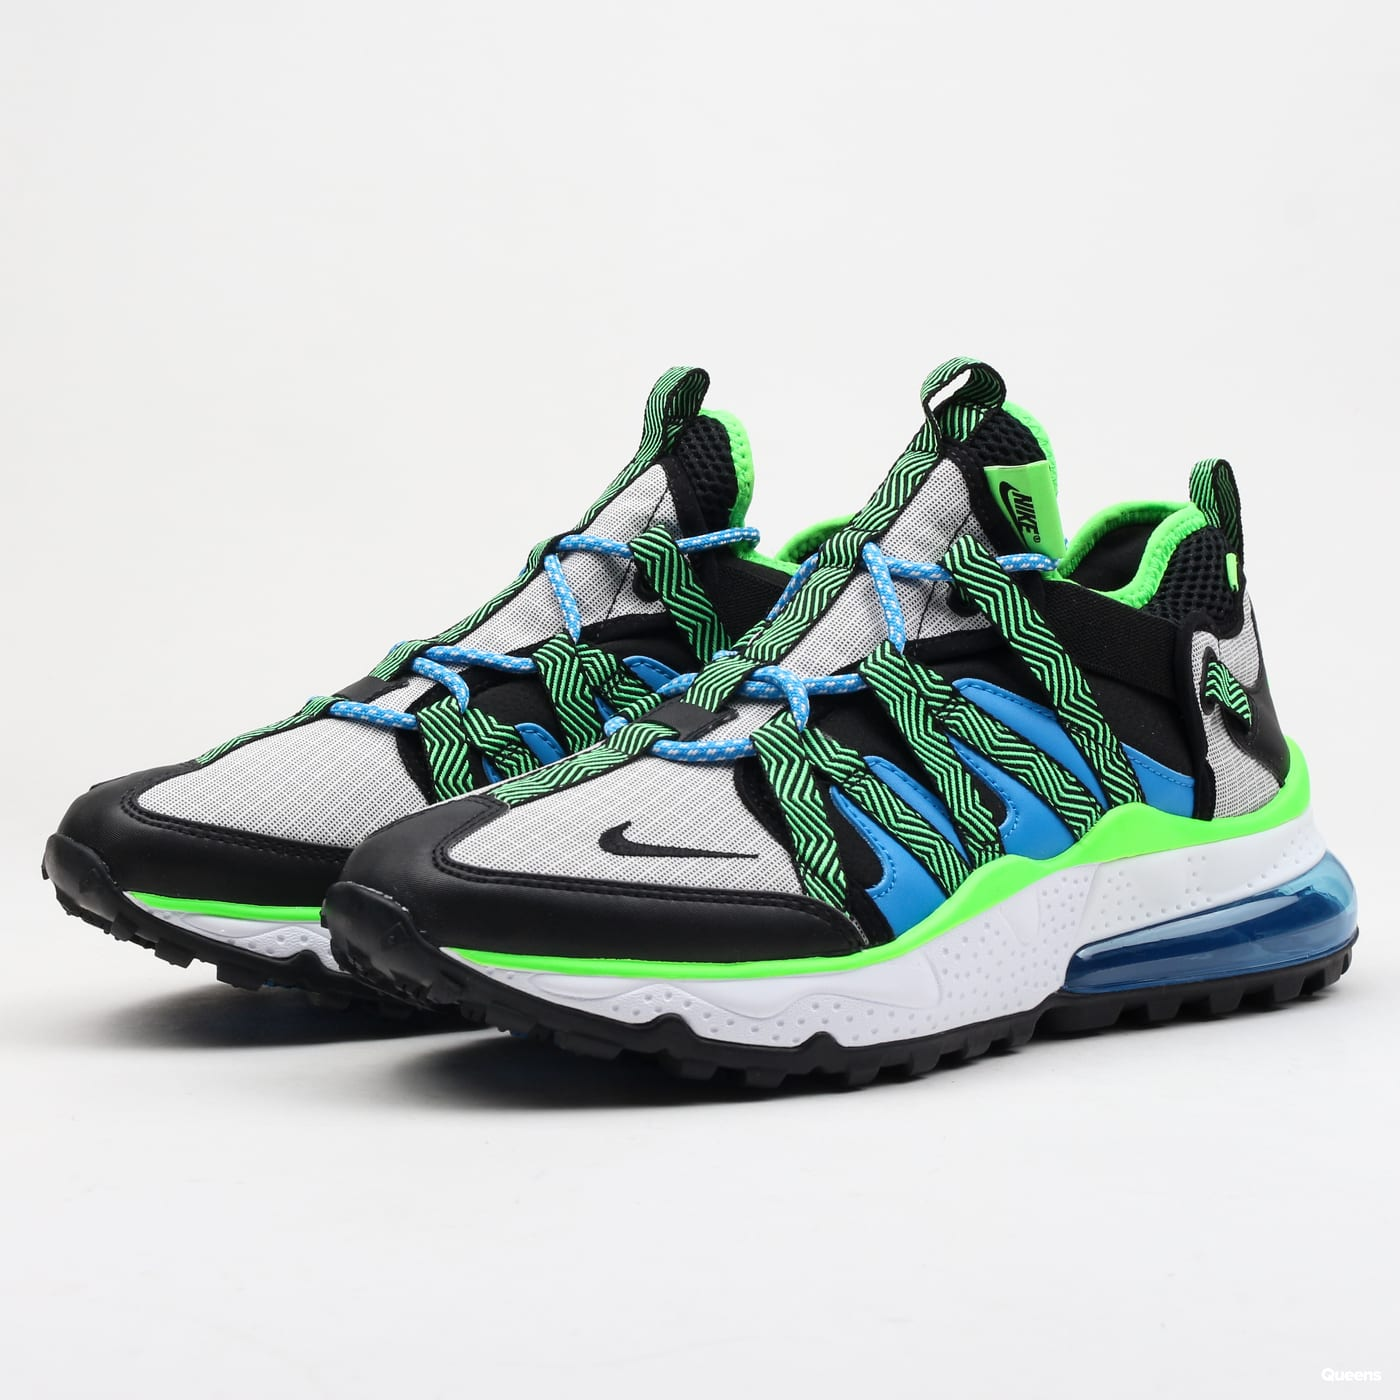 low priced 98ac4 0bce4 Sneakers Nike Air Max 270 Bowfin (AJ7200-002)– Queens 💚